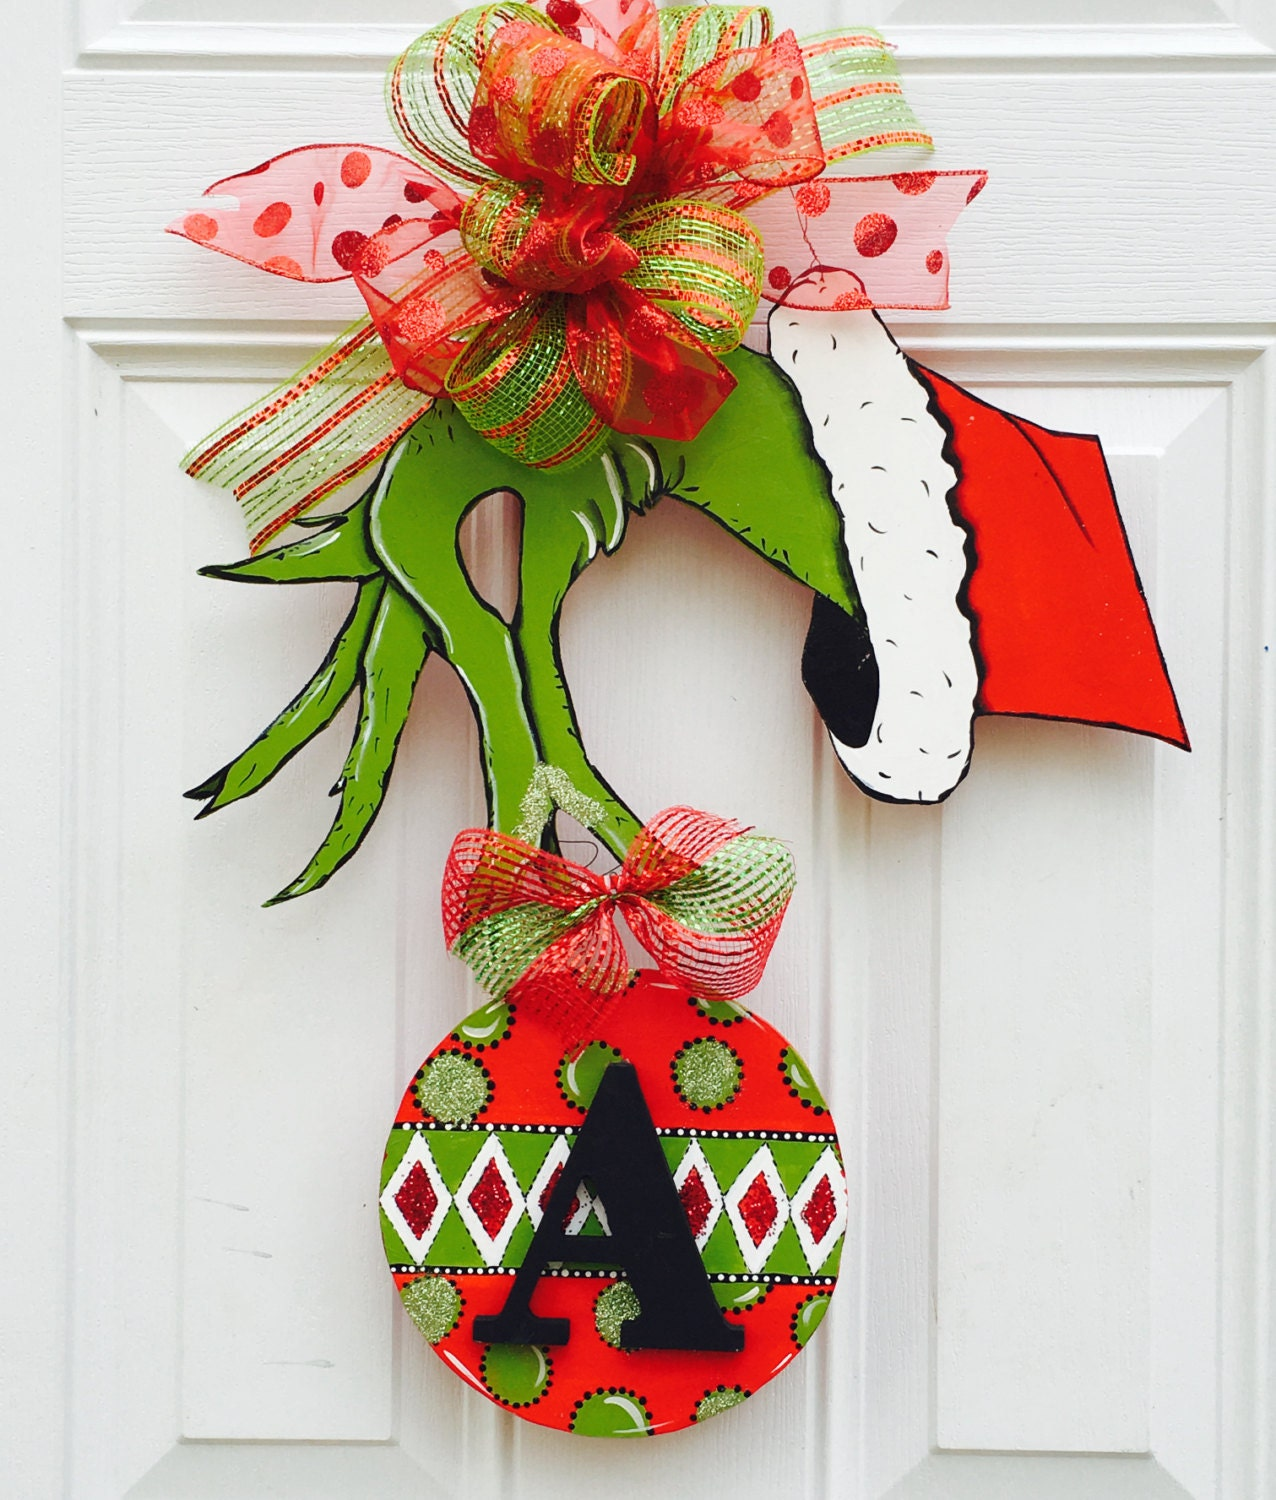 Christmas Decorations The Grinch: Grinch Hand Door Hanger With Initial How The Grinch Stole